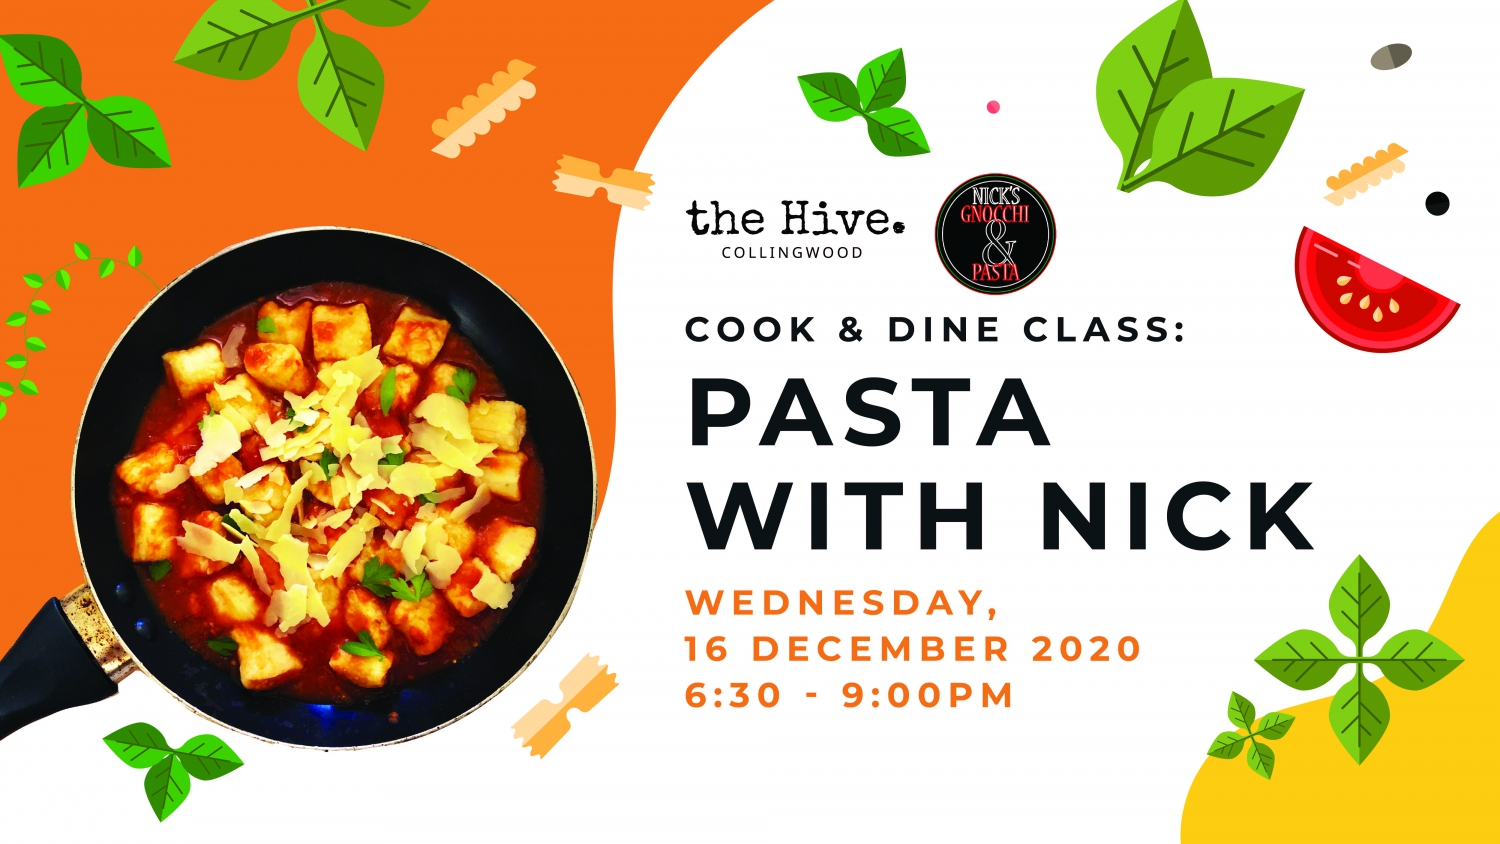 Cook & Dine Class: Pasta with Nick